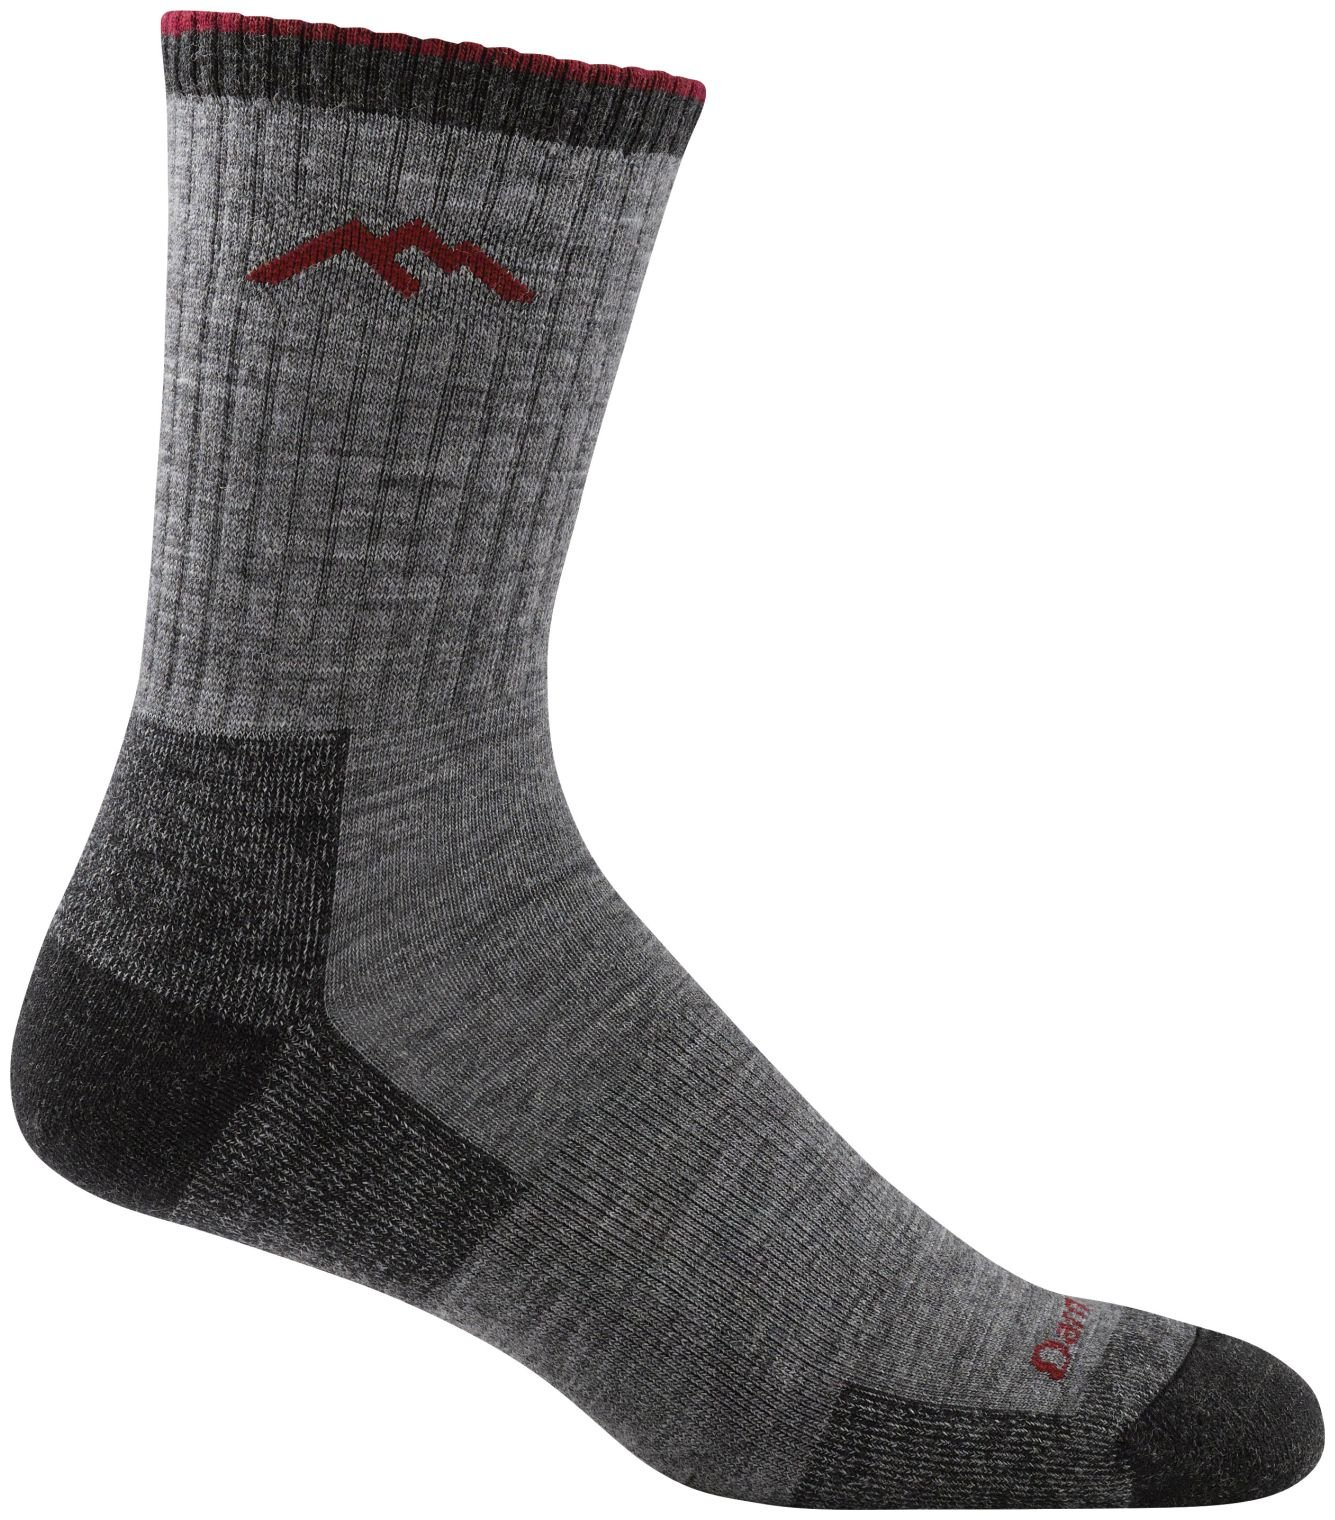 Darn Tough Vermont Men's Hiker Micro Crew Cushion Socks, Charcoal, Large by Darn Tough